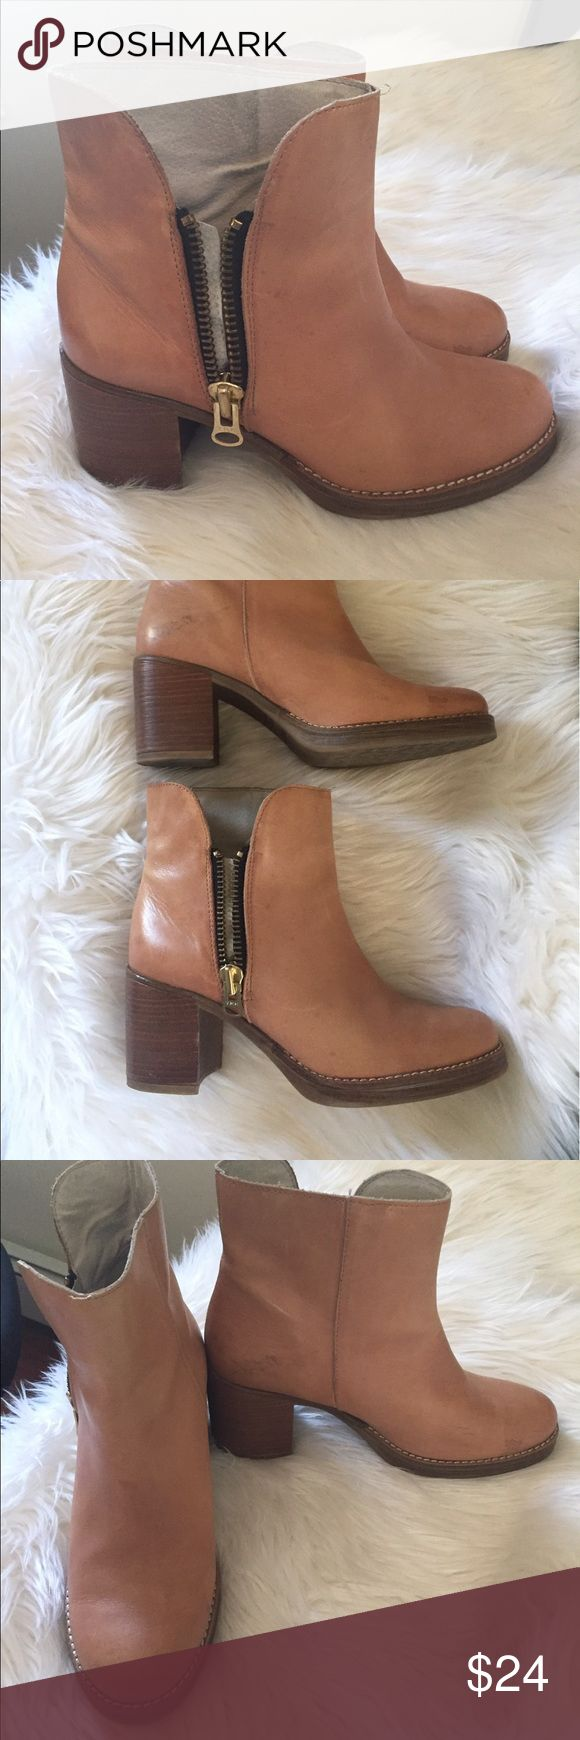 Mtng tan leather boots size 38 / 7.5 Cute vintage-style boots. Good used condition. See photos for signs of wear. Brand is Mtng sold at Lulu's. Lulu's Shoes Heeled Boots